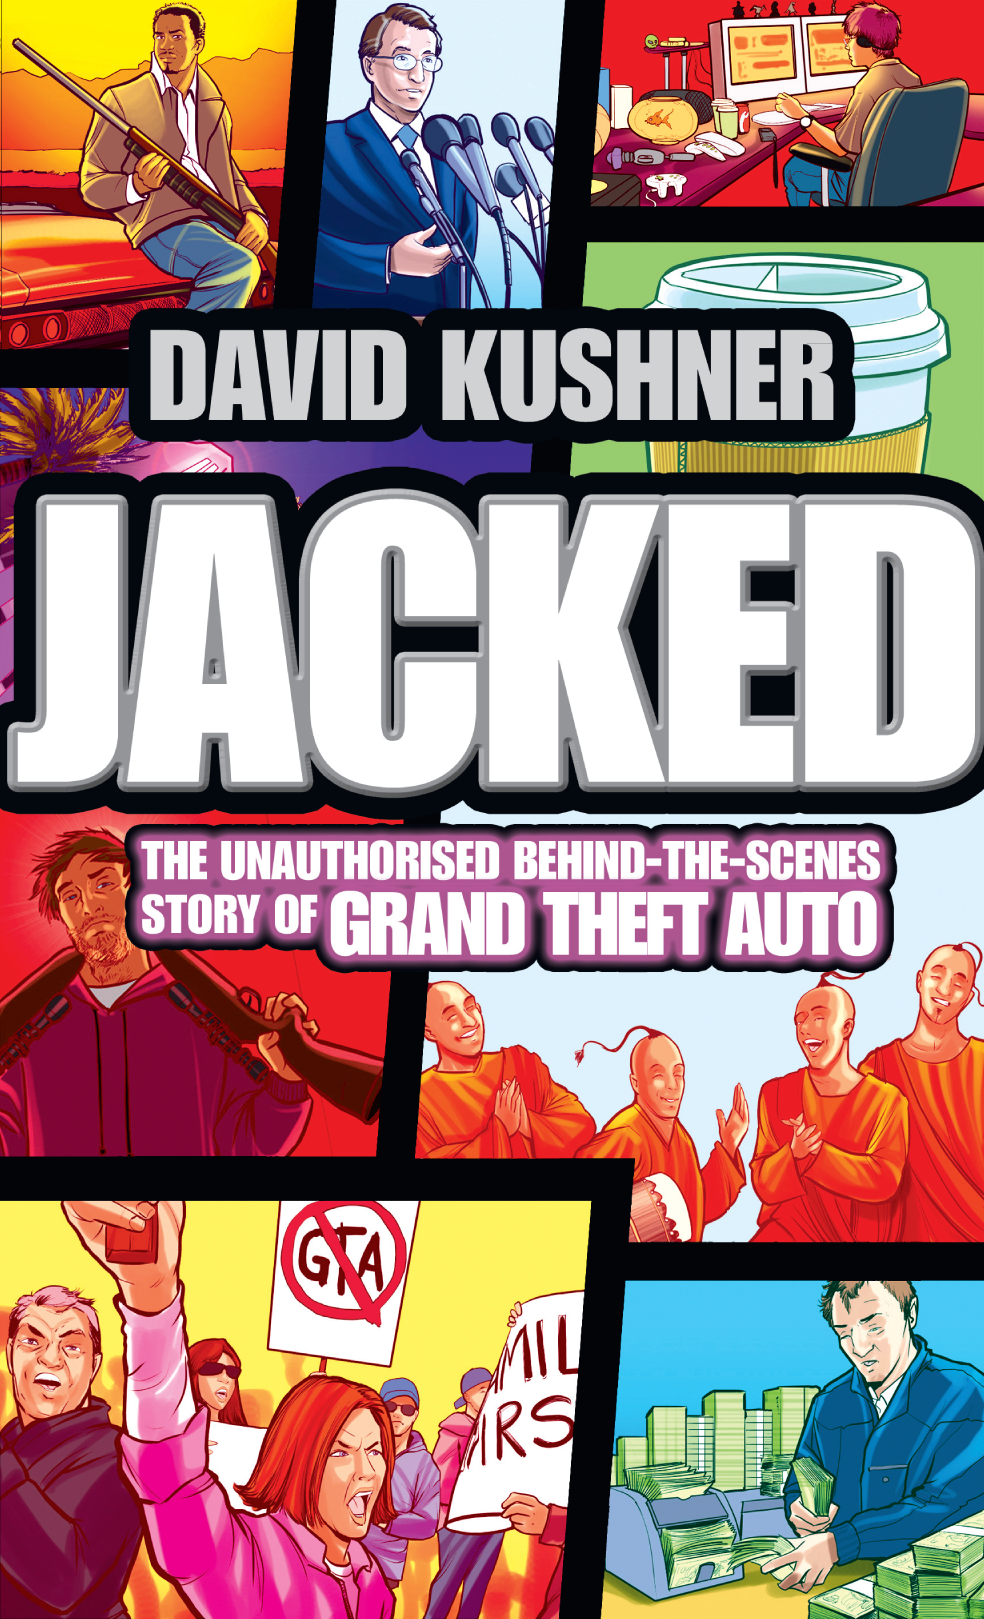 David Kushner Jacked: The unauthorized behind-the-scenes story of Grand Theft Auto robert p baker the trade lifecycle behind the scenes of the trading process